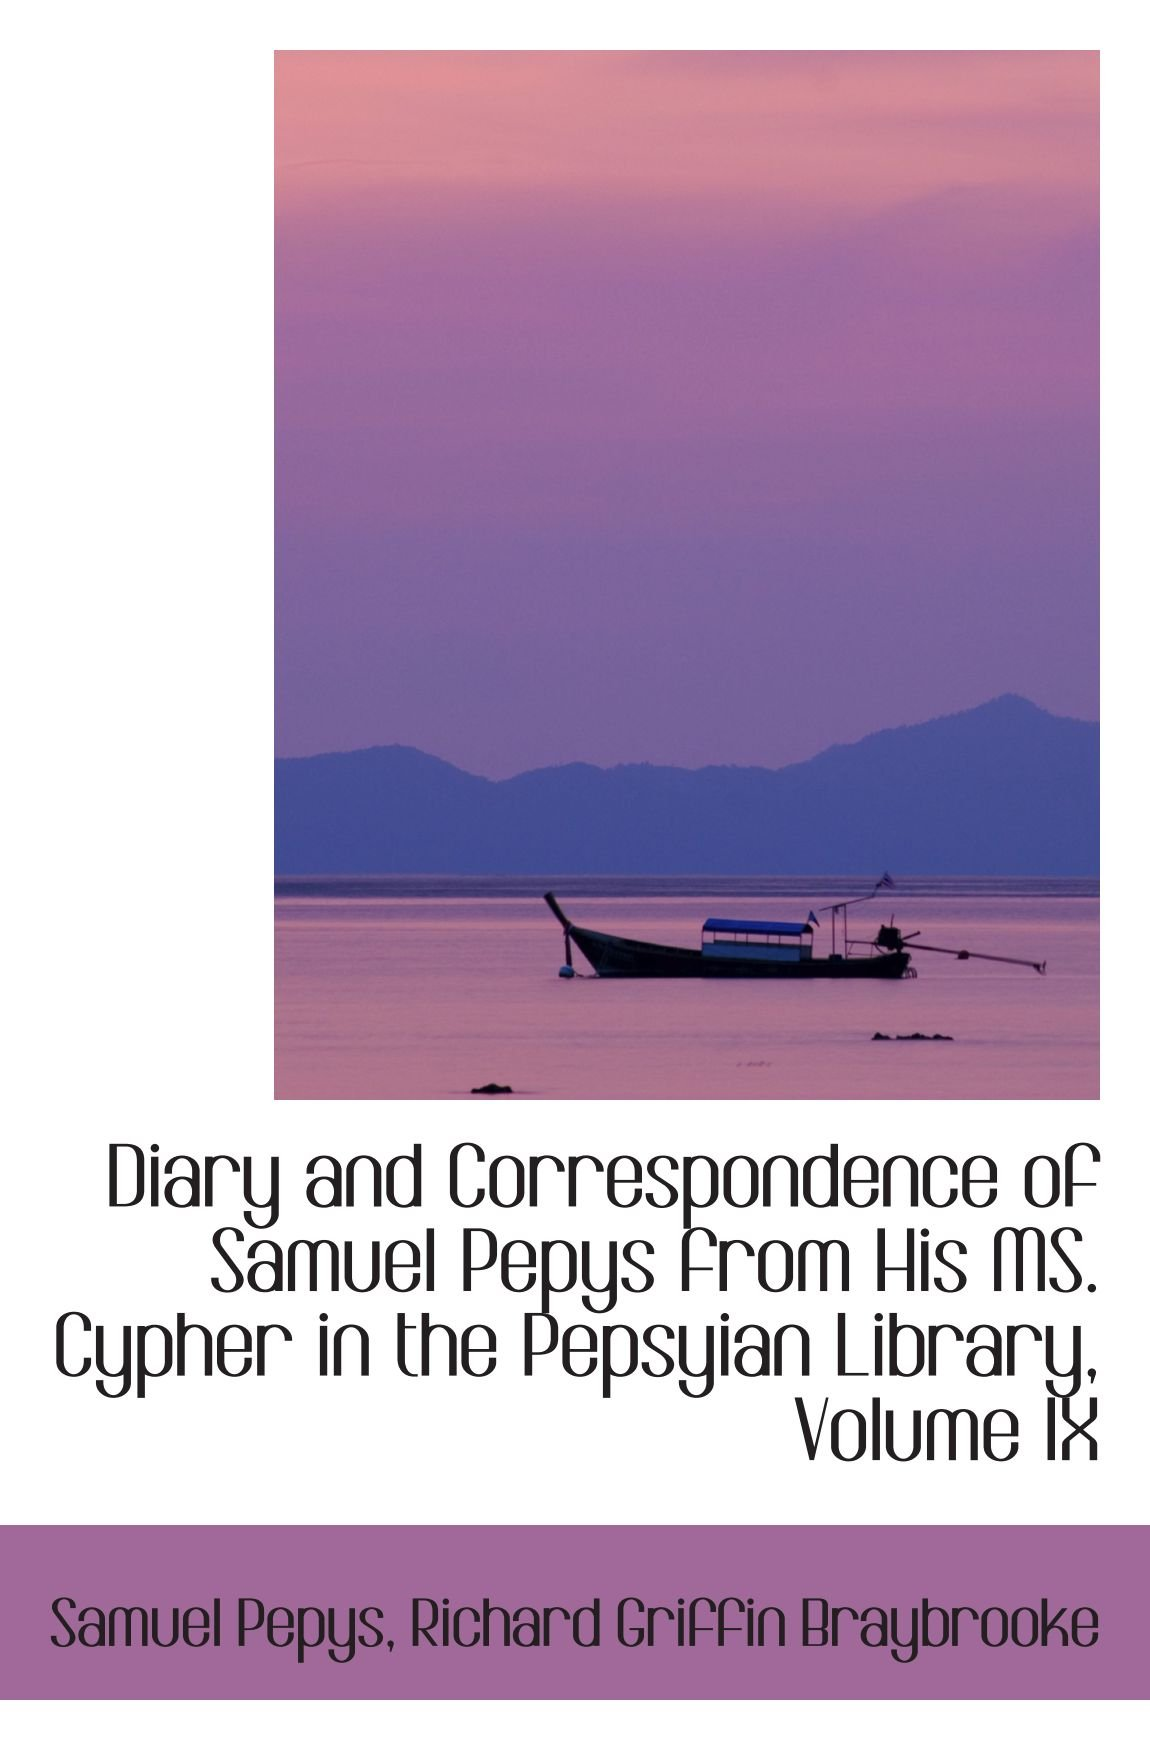 Download Diary and Correspondence of Samuel Pepys from His MS. Cypher in the Pepsyian Library, Volume IX PDF